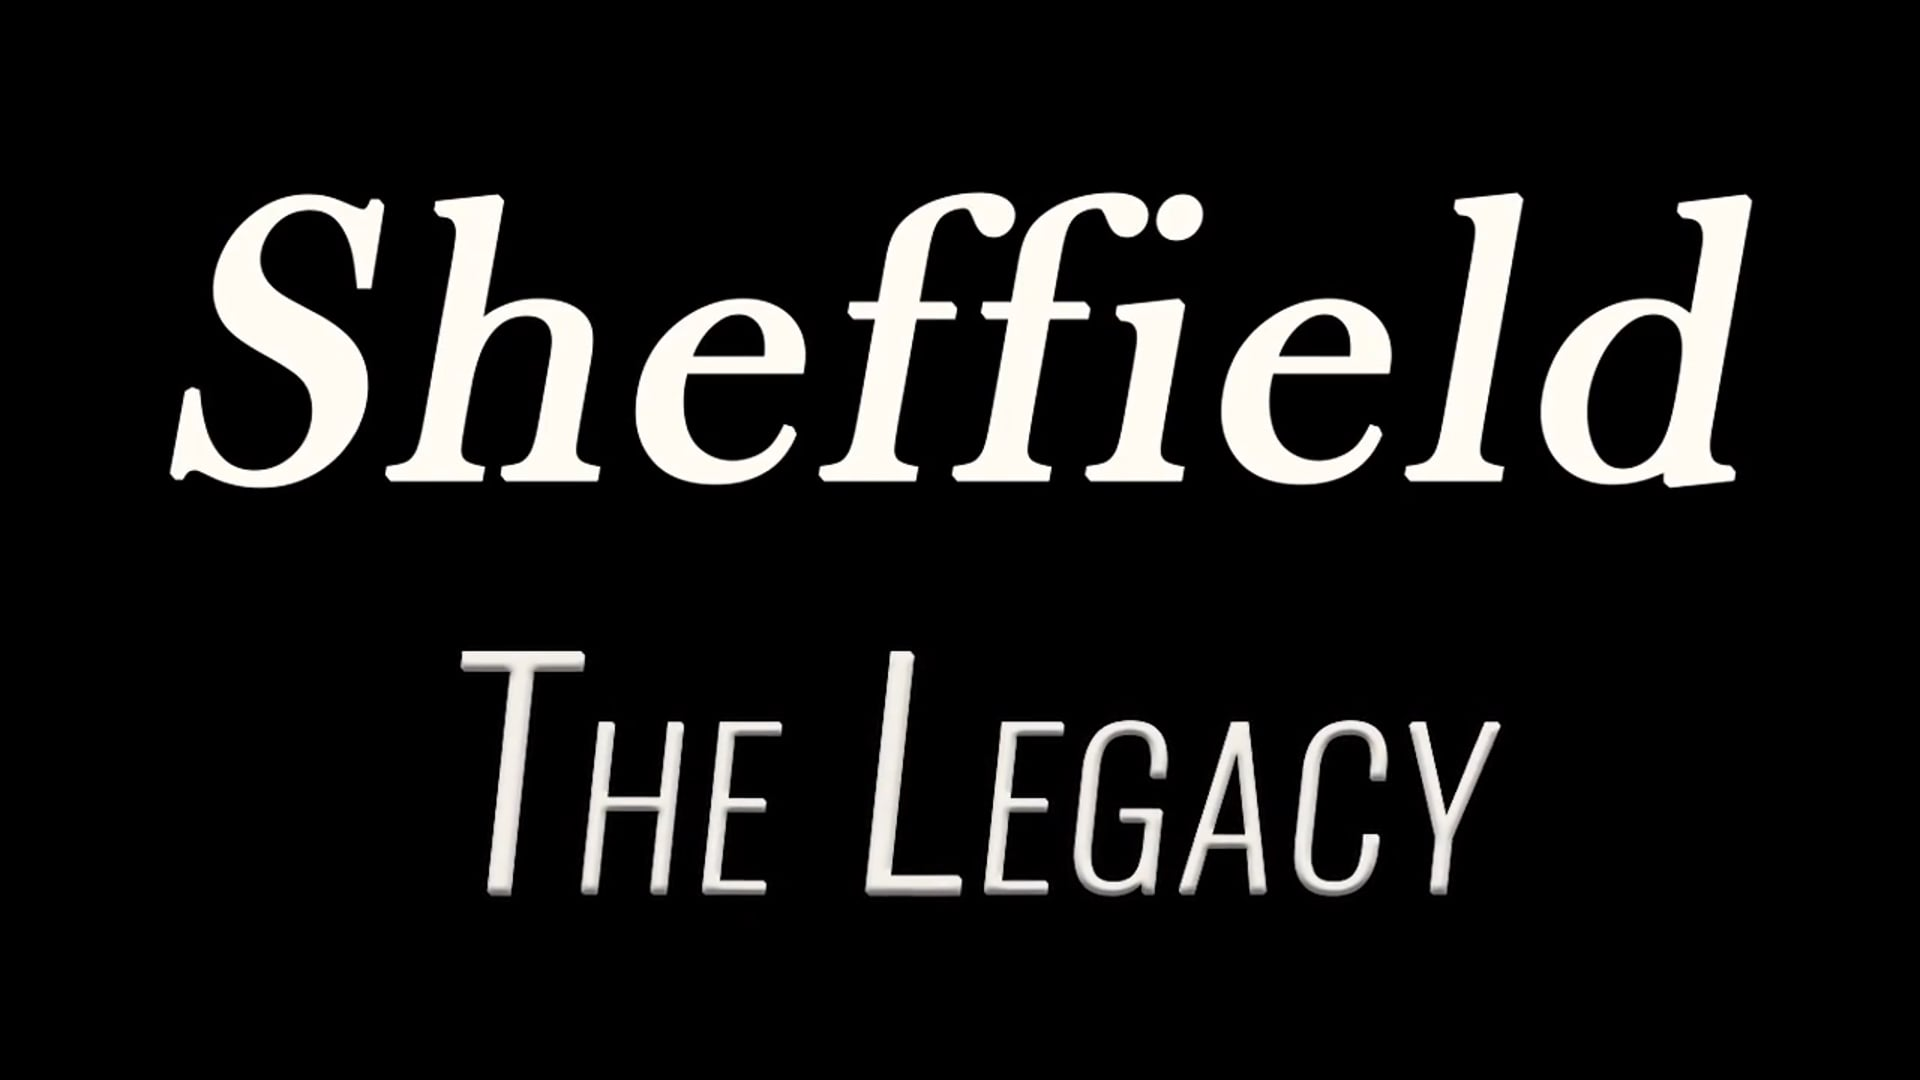 Sheffield: The Legacy